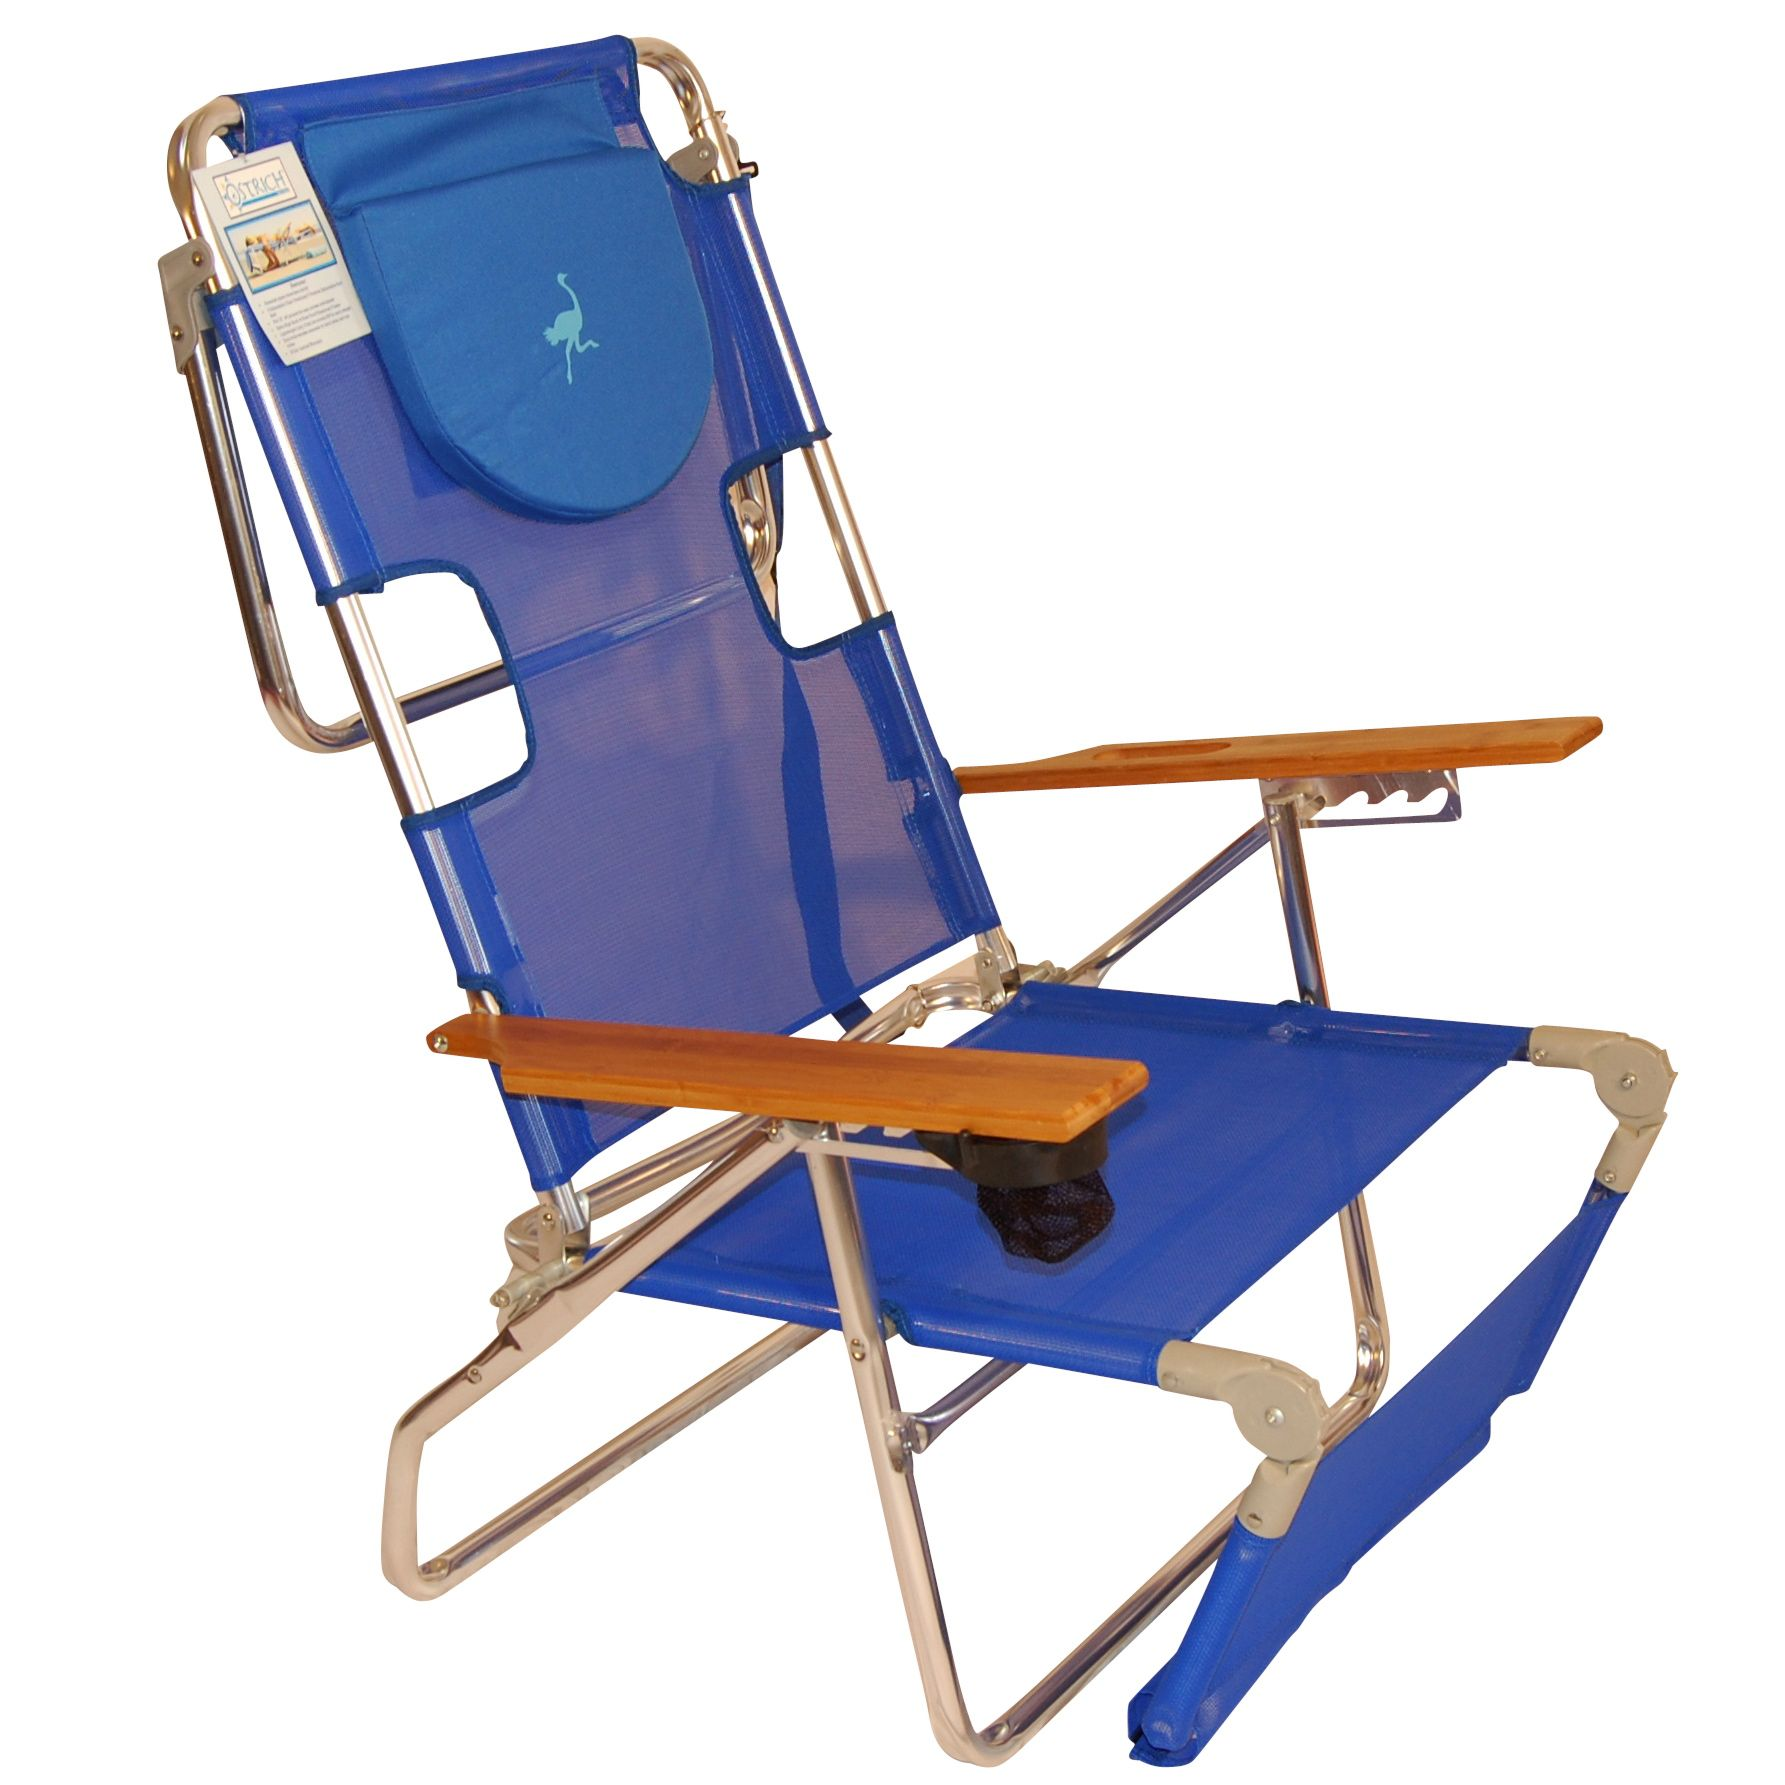 portable garden chairs , folding camping chair in Spain